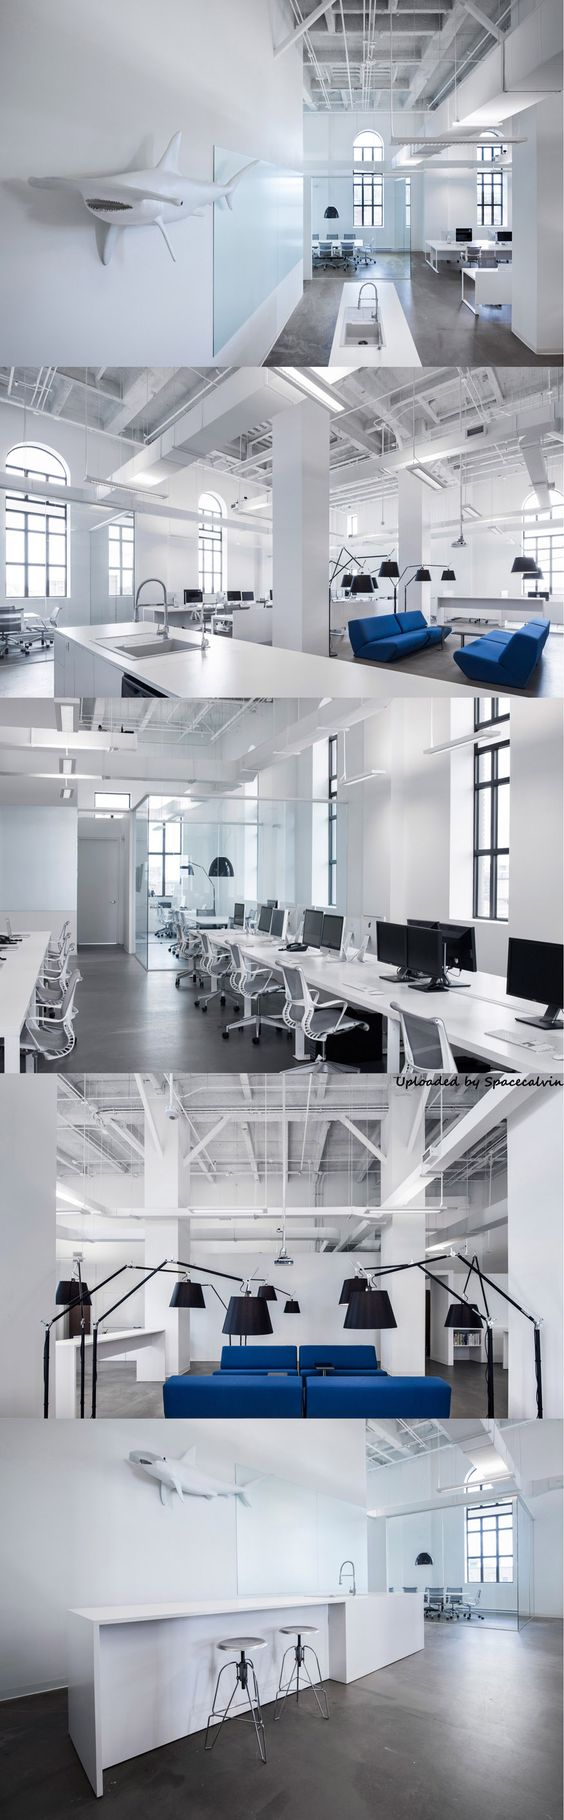 blue communications office space by jean guy chabauty anne sophie goneau blue white office space